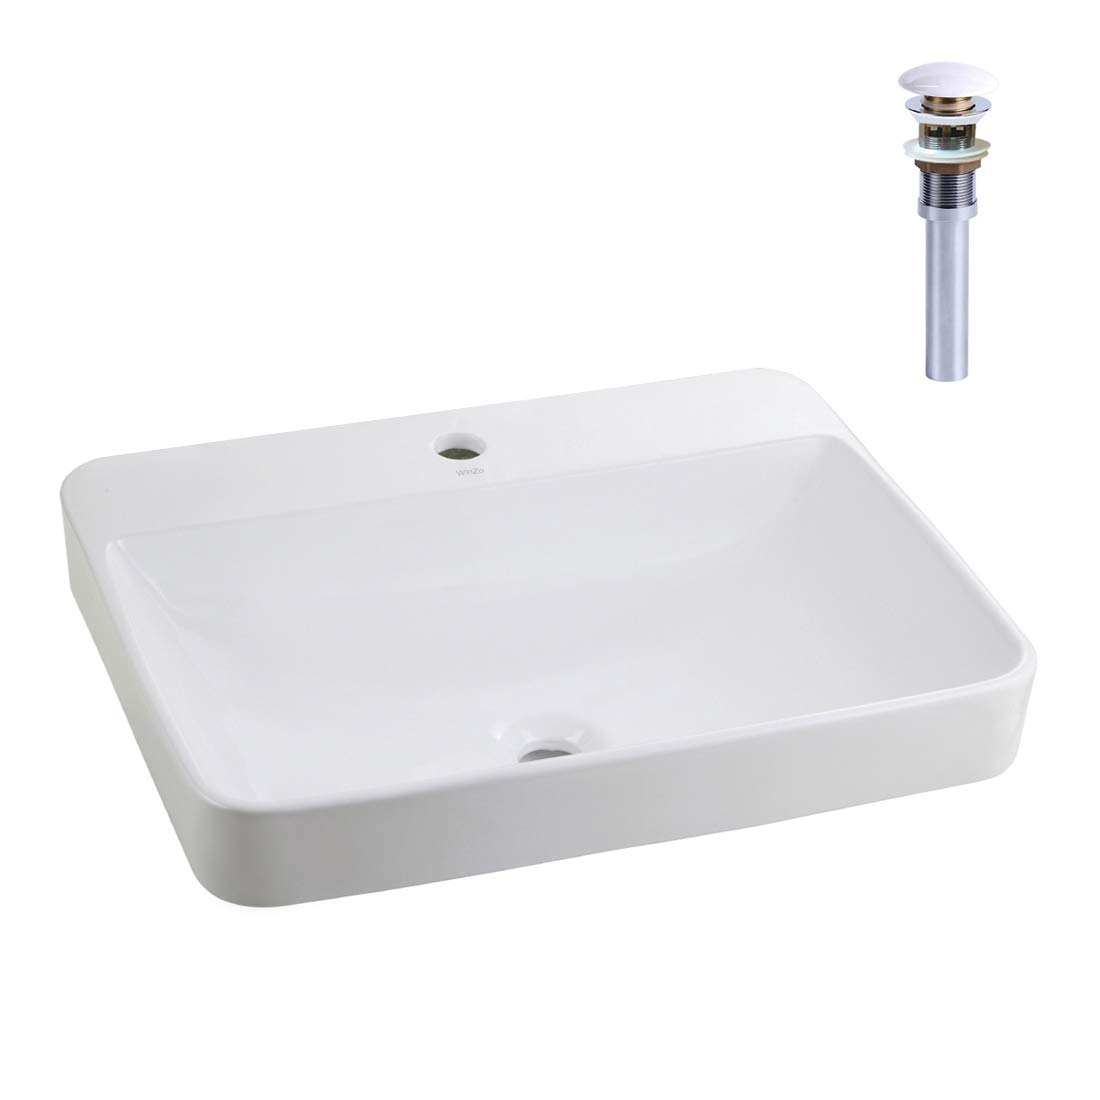 WinZo WZ6123D Drop-in Bathroom Vessel Sink with Single Faucet Hole,Rectangular Semi-recessed Basin Included Porcelain White Brass Pop Up Drain